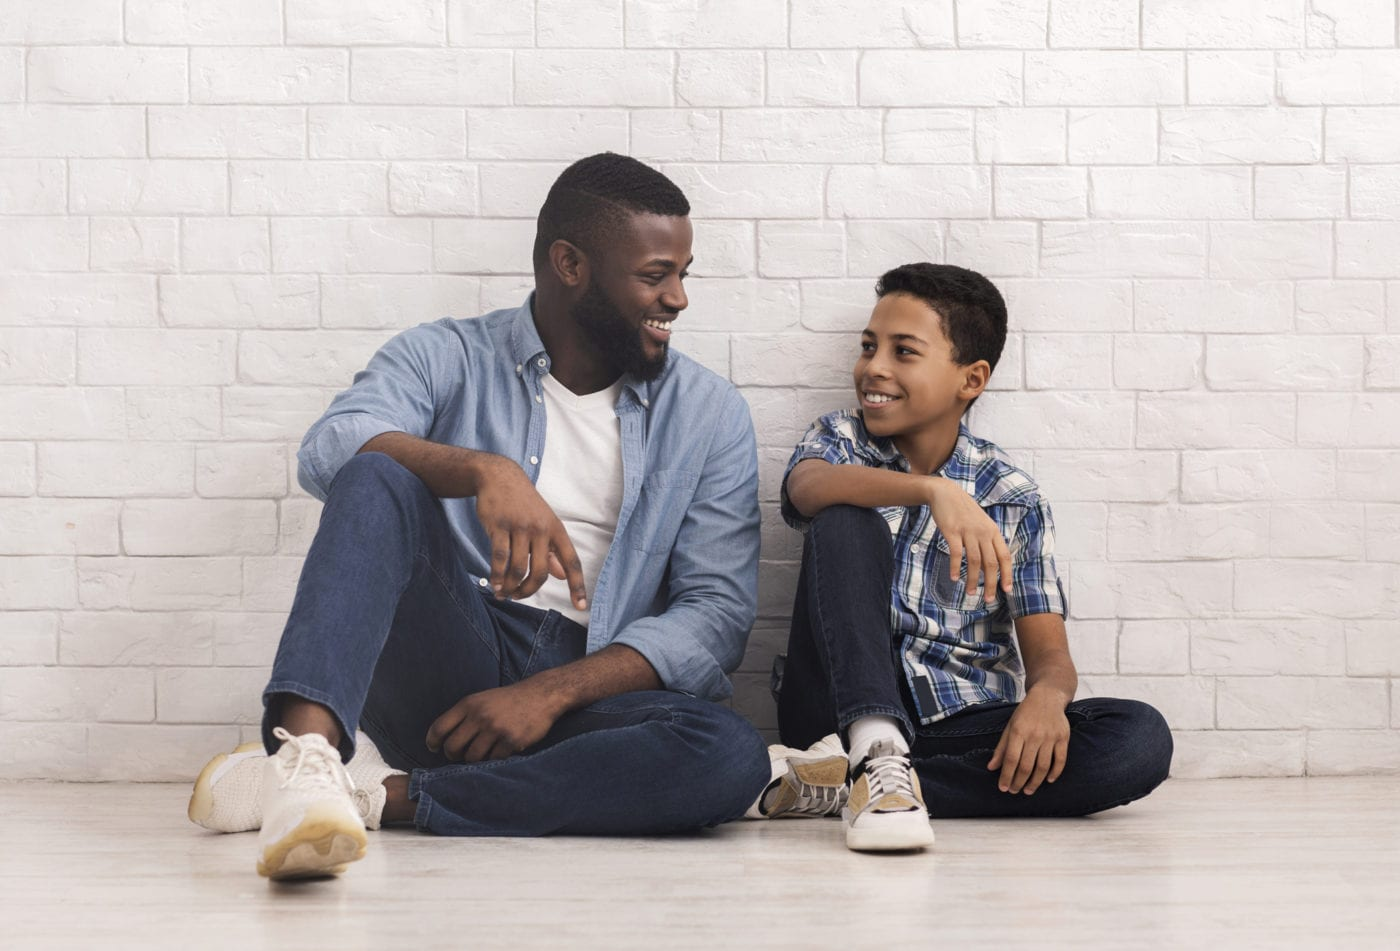 habits dads need to teach their sons